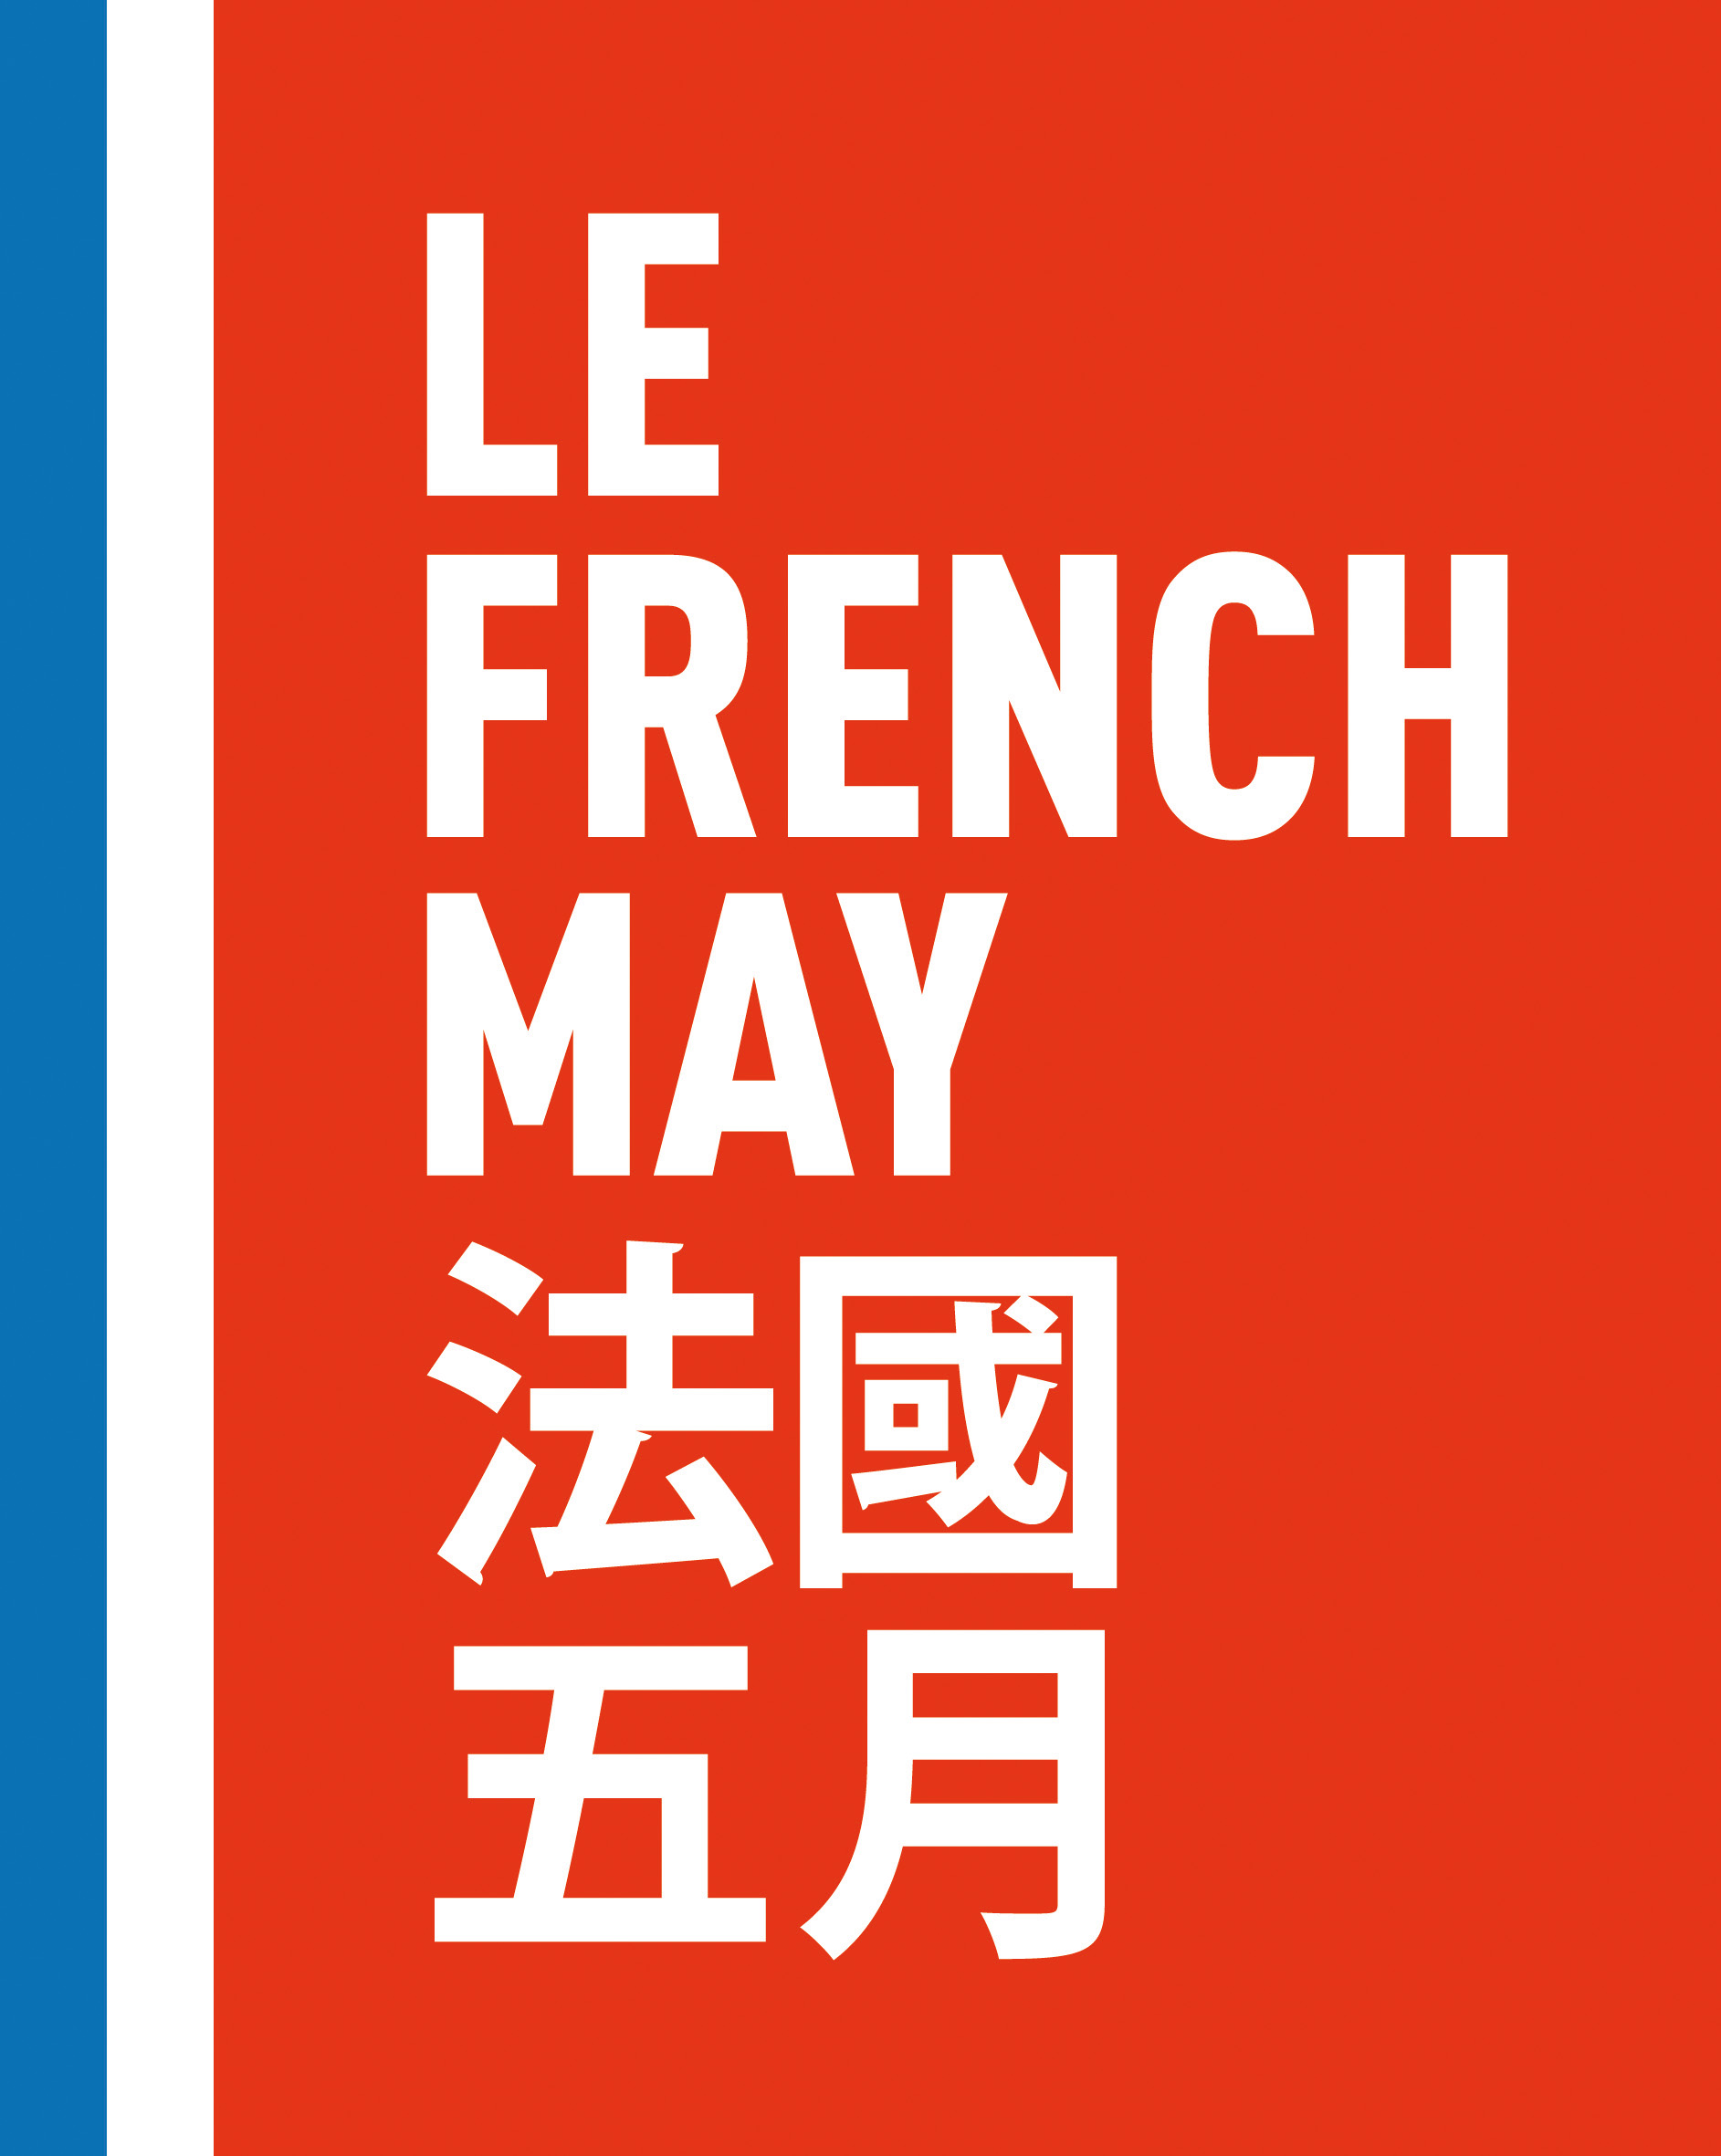 Le French May Arts Festival 2014